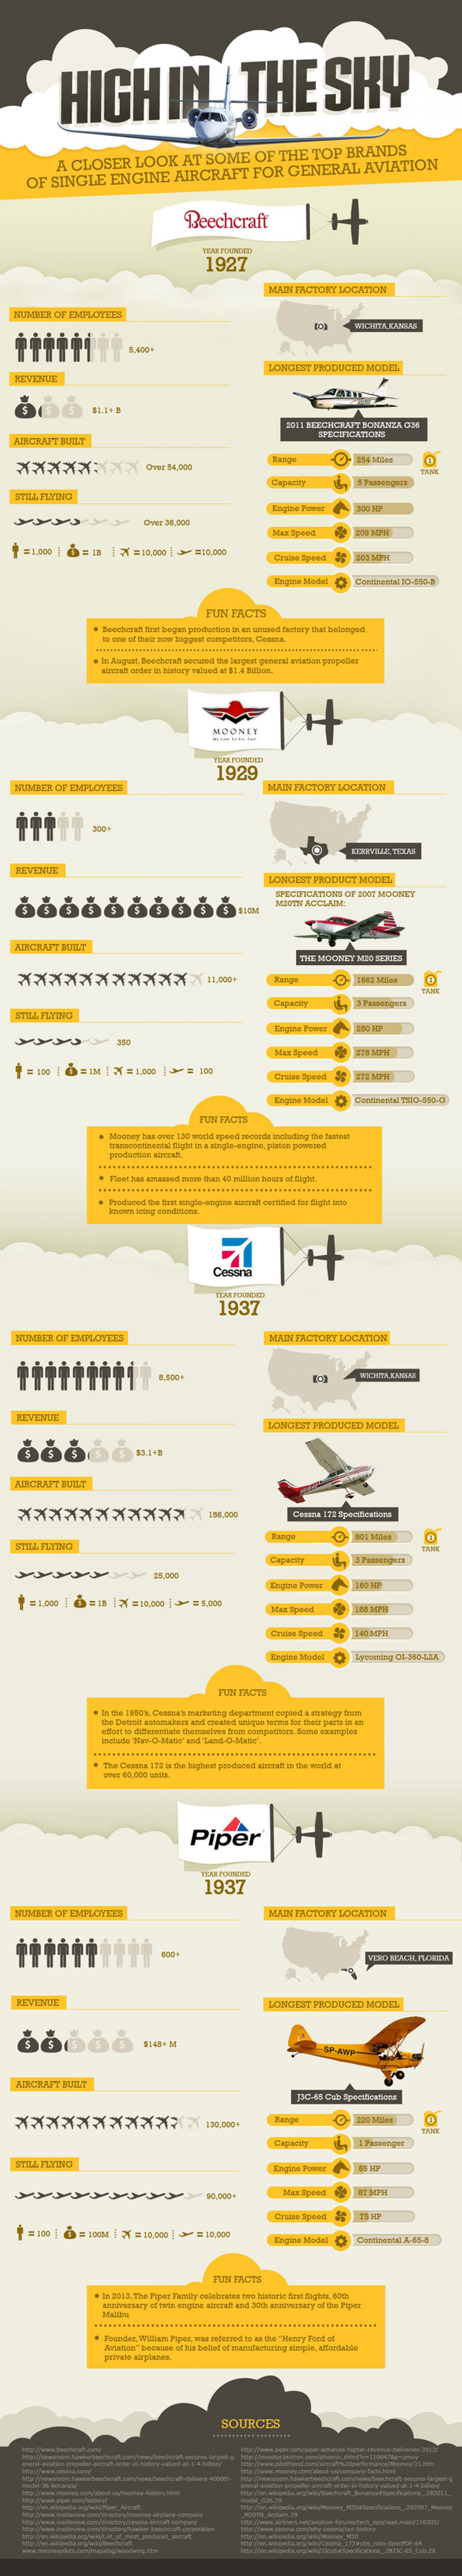 High In The Sky Infographic